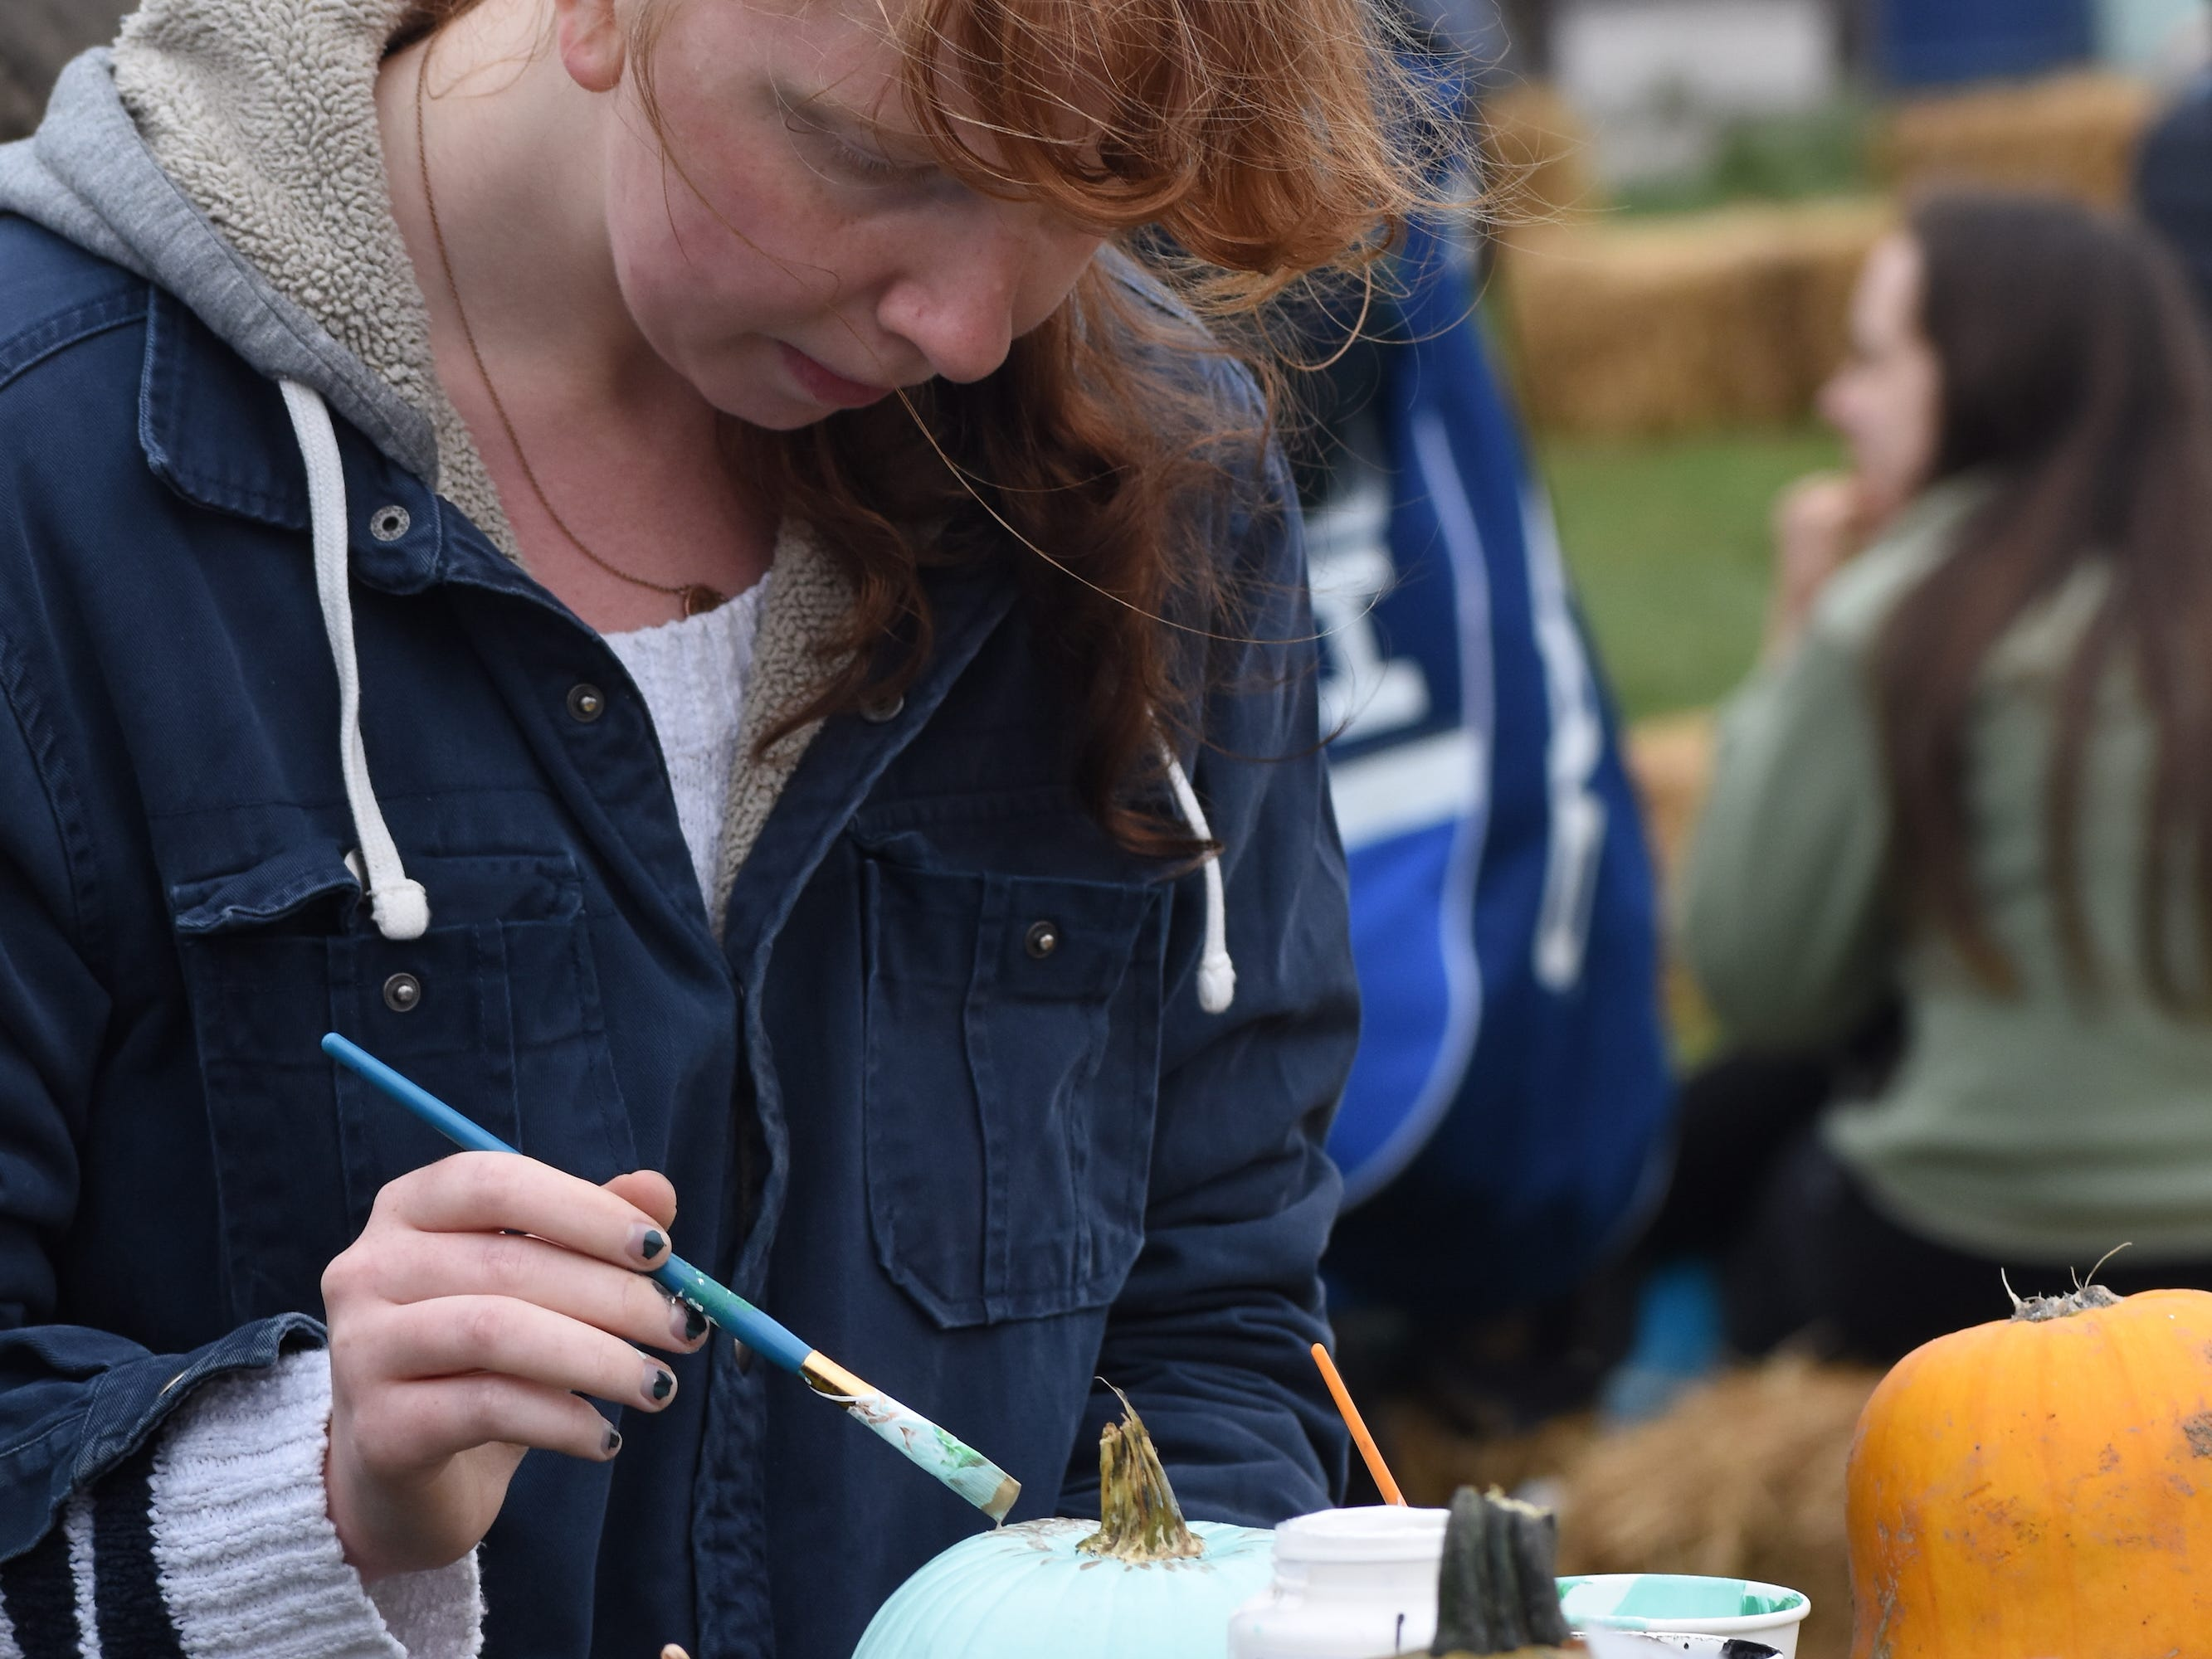 Rin Swan, of New York, paints a pumpkin at Harvest Fest. Visitors were invited to decorate a pumpkin to take with them.